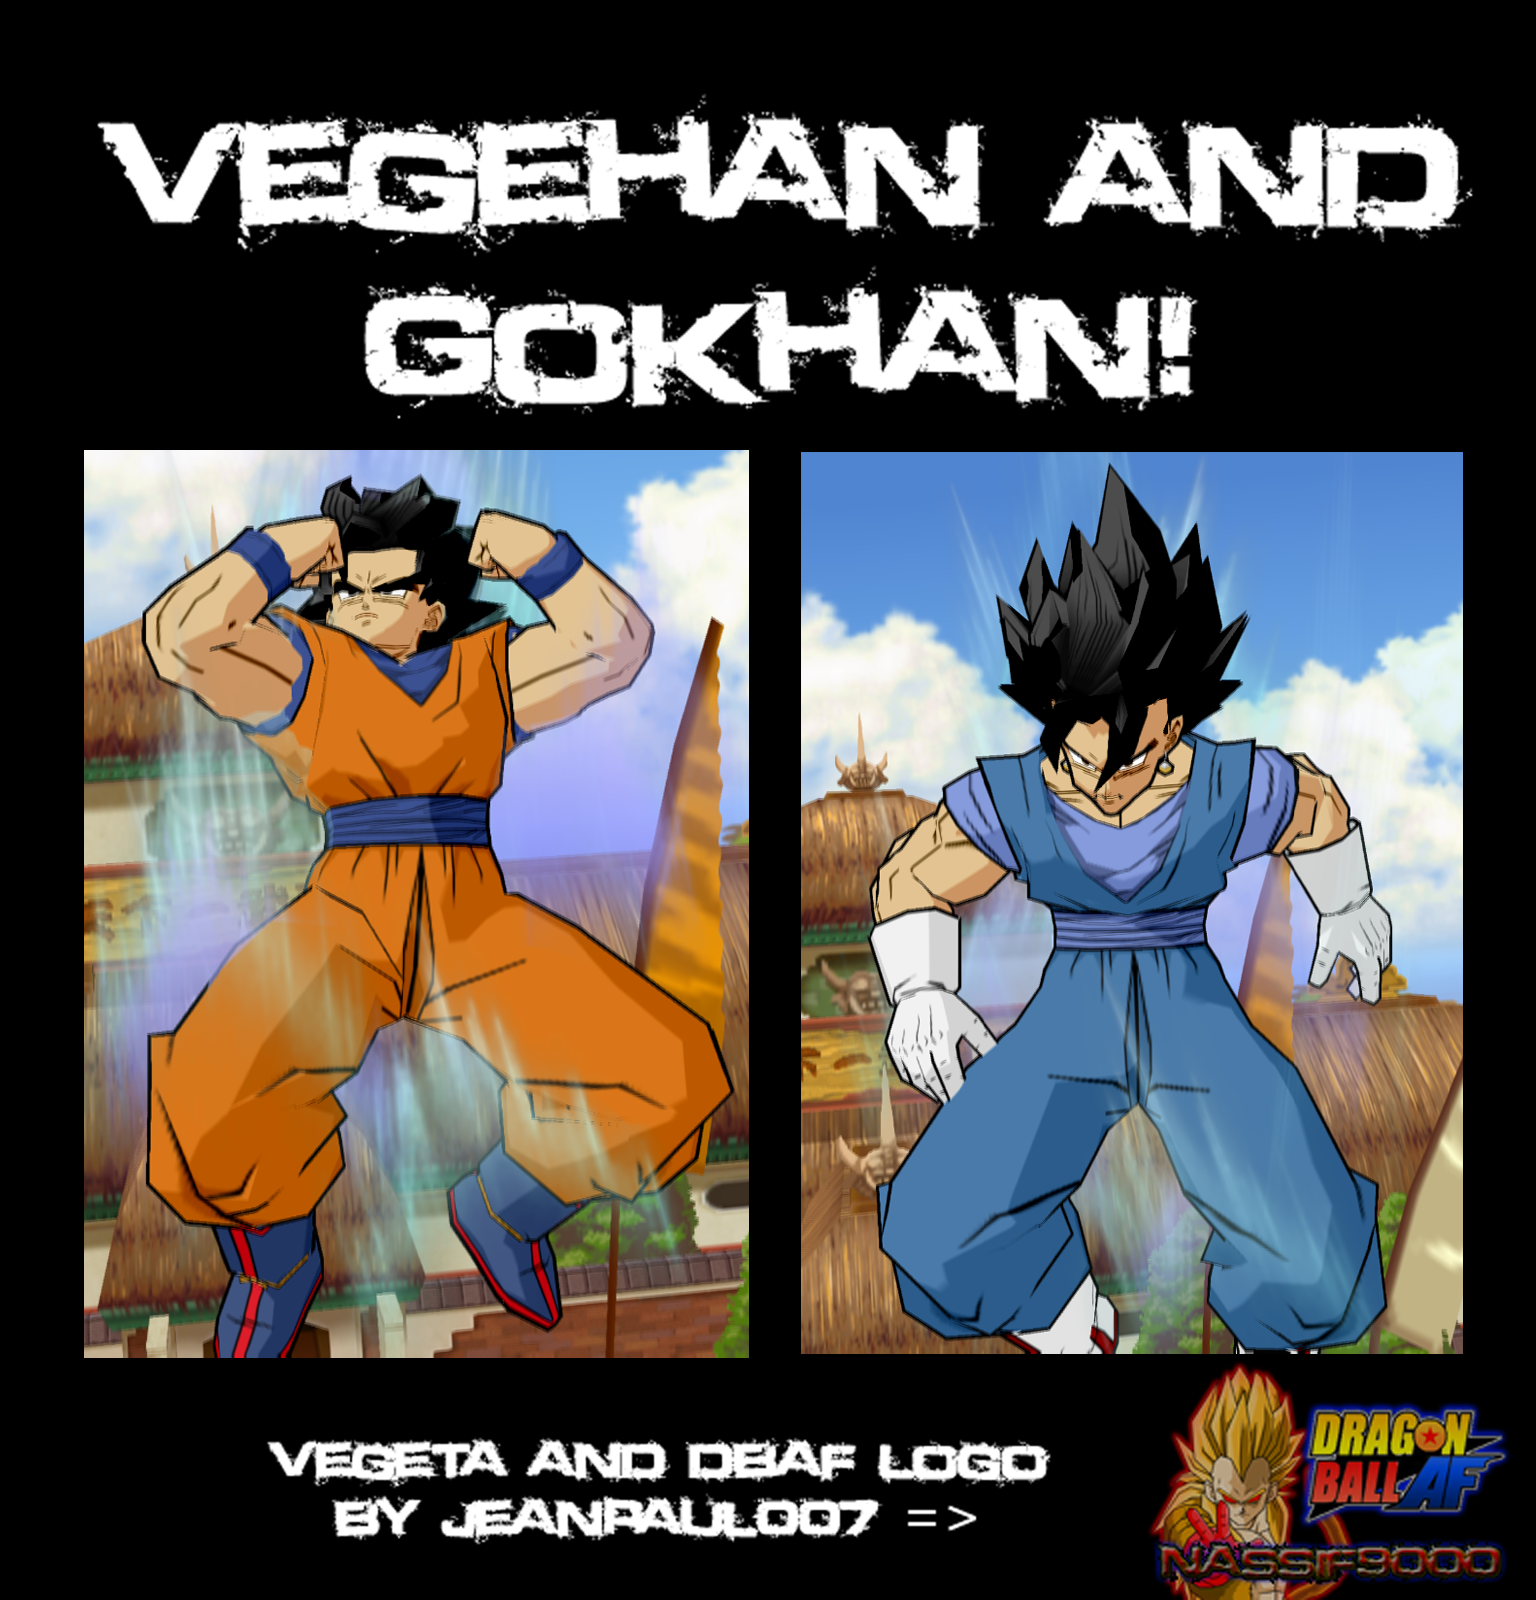 Ultimate Gokhan And Ultimate Vegehan by Nassif9000